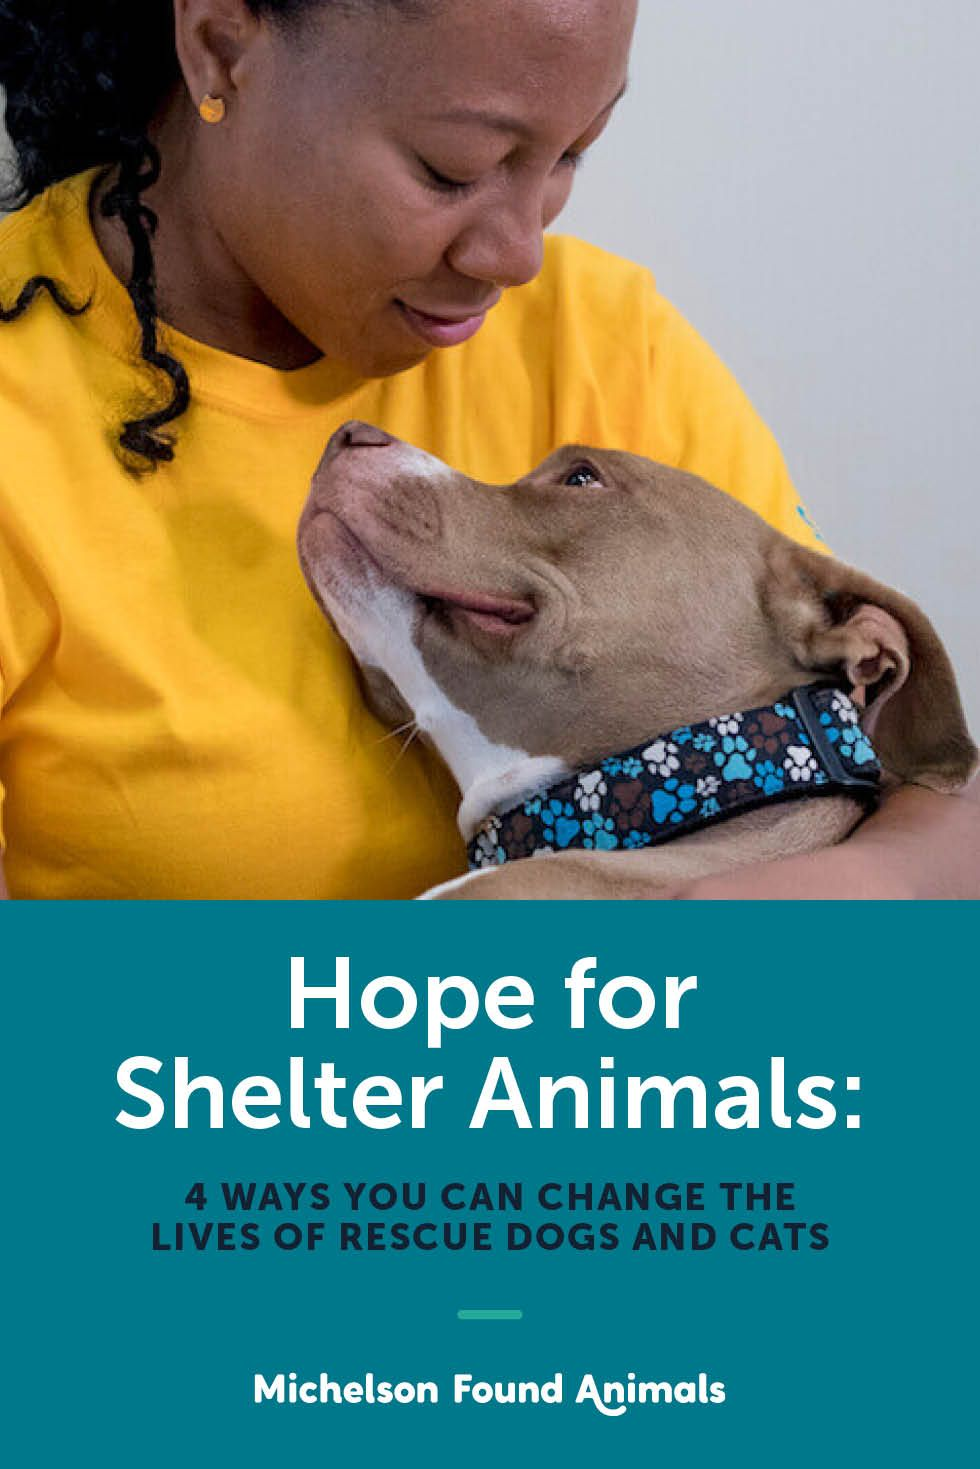 Hope for Shelter Animals 4 Ways You Can Change the Lives